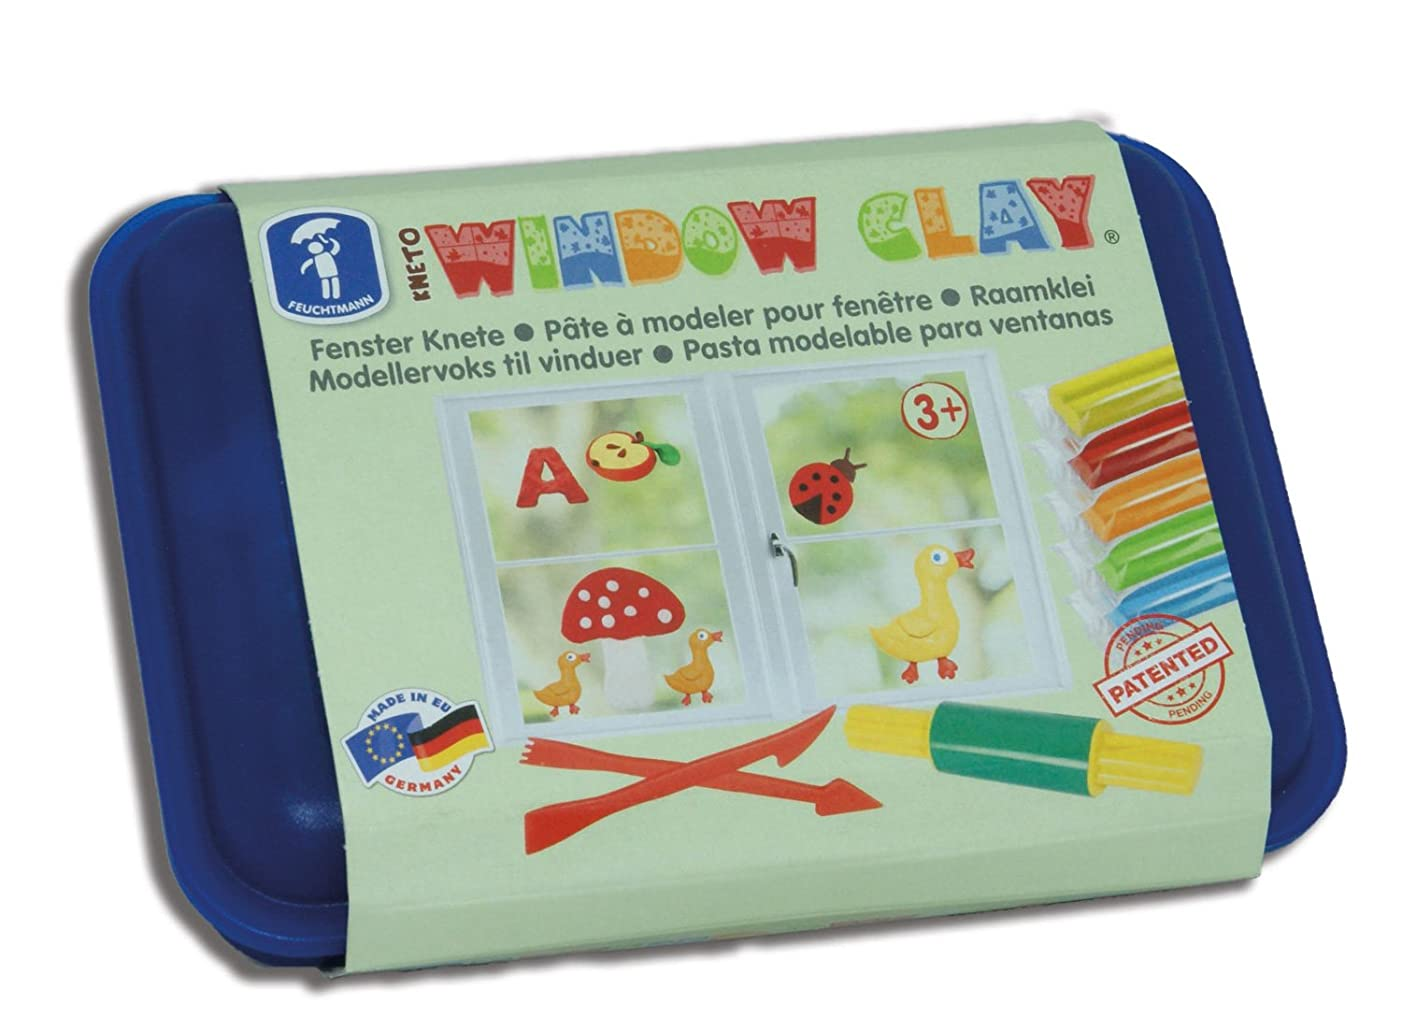 Feuchtmann 628 1407 Kneto Window Clay Lunchbox, Multi Colour